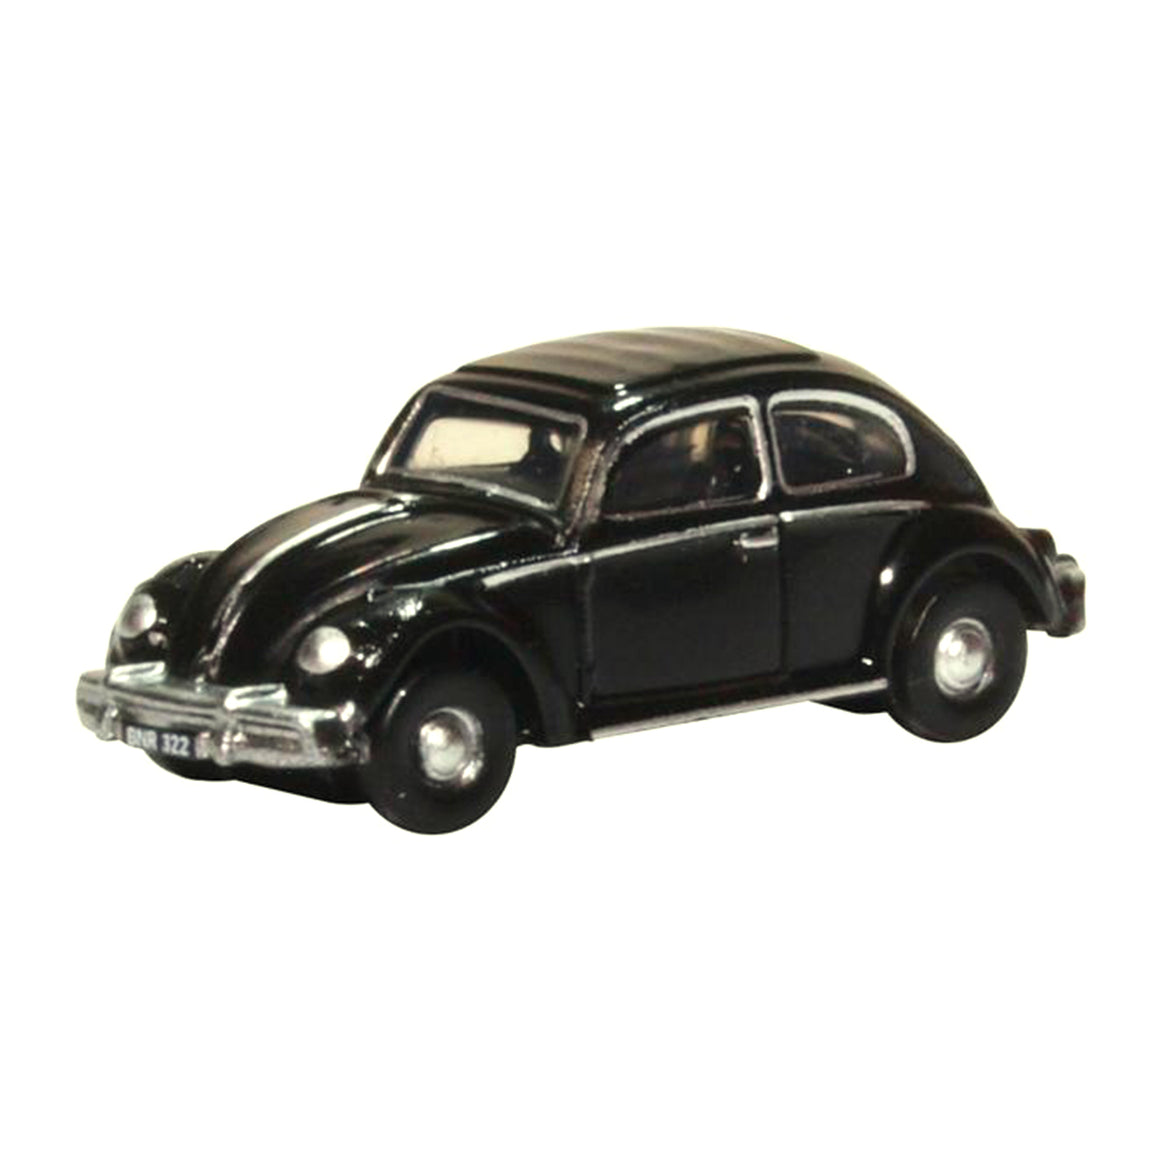 N Scale: Volkswagen Beetle - Black